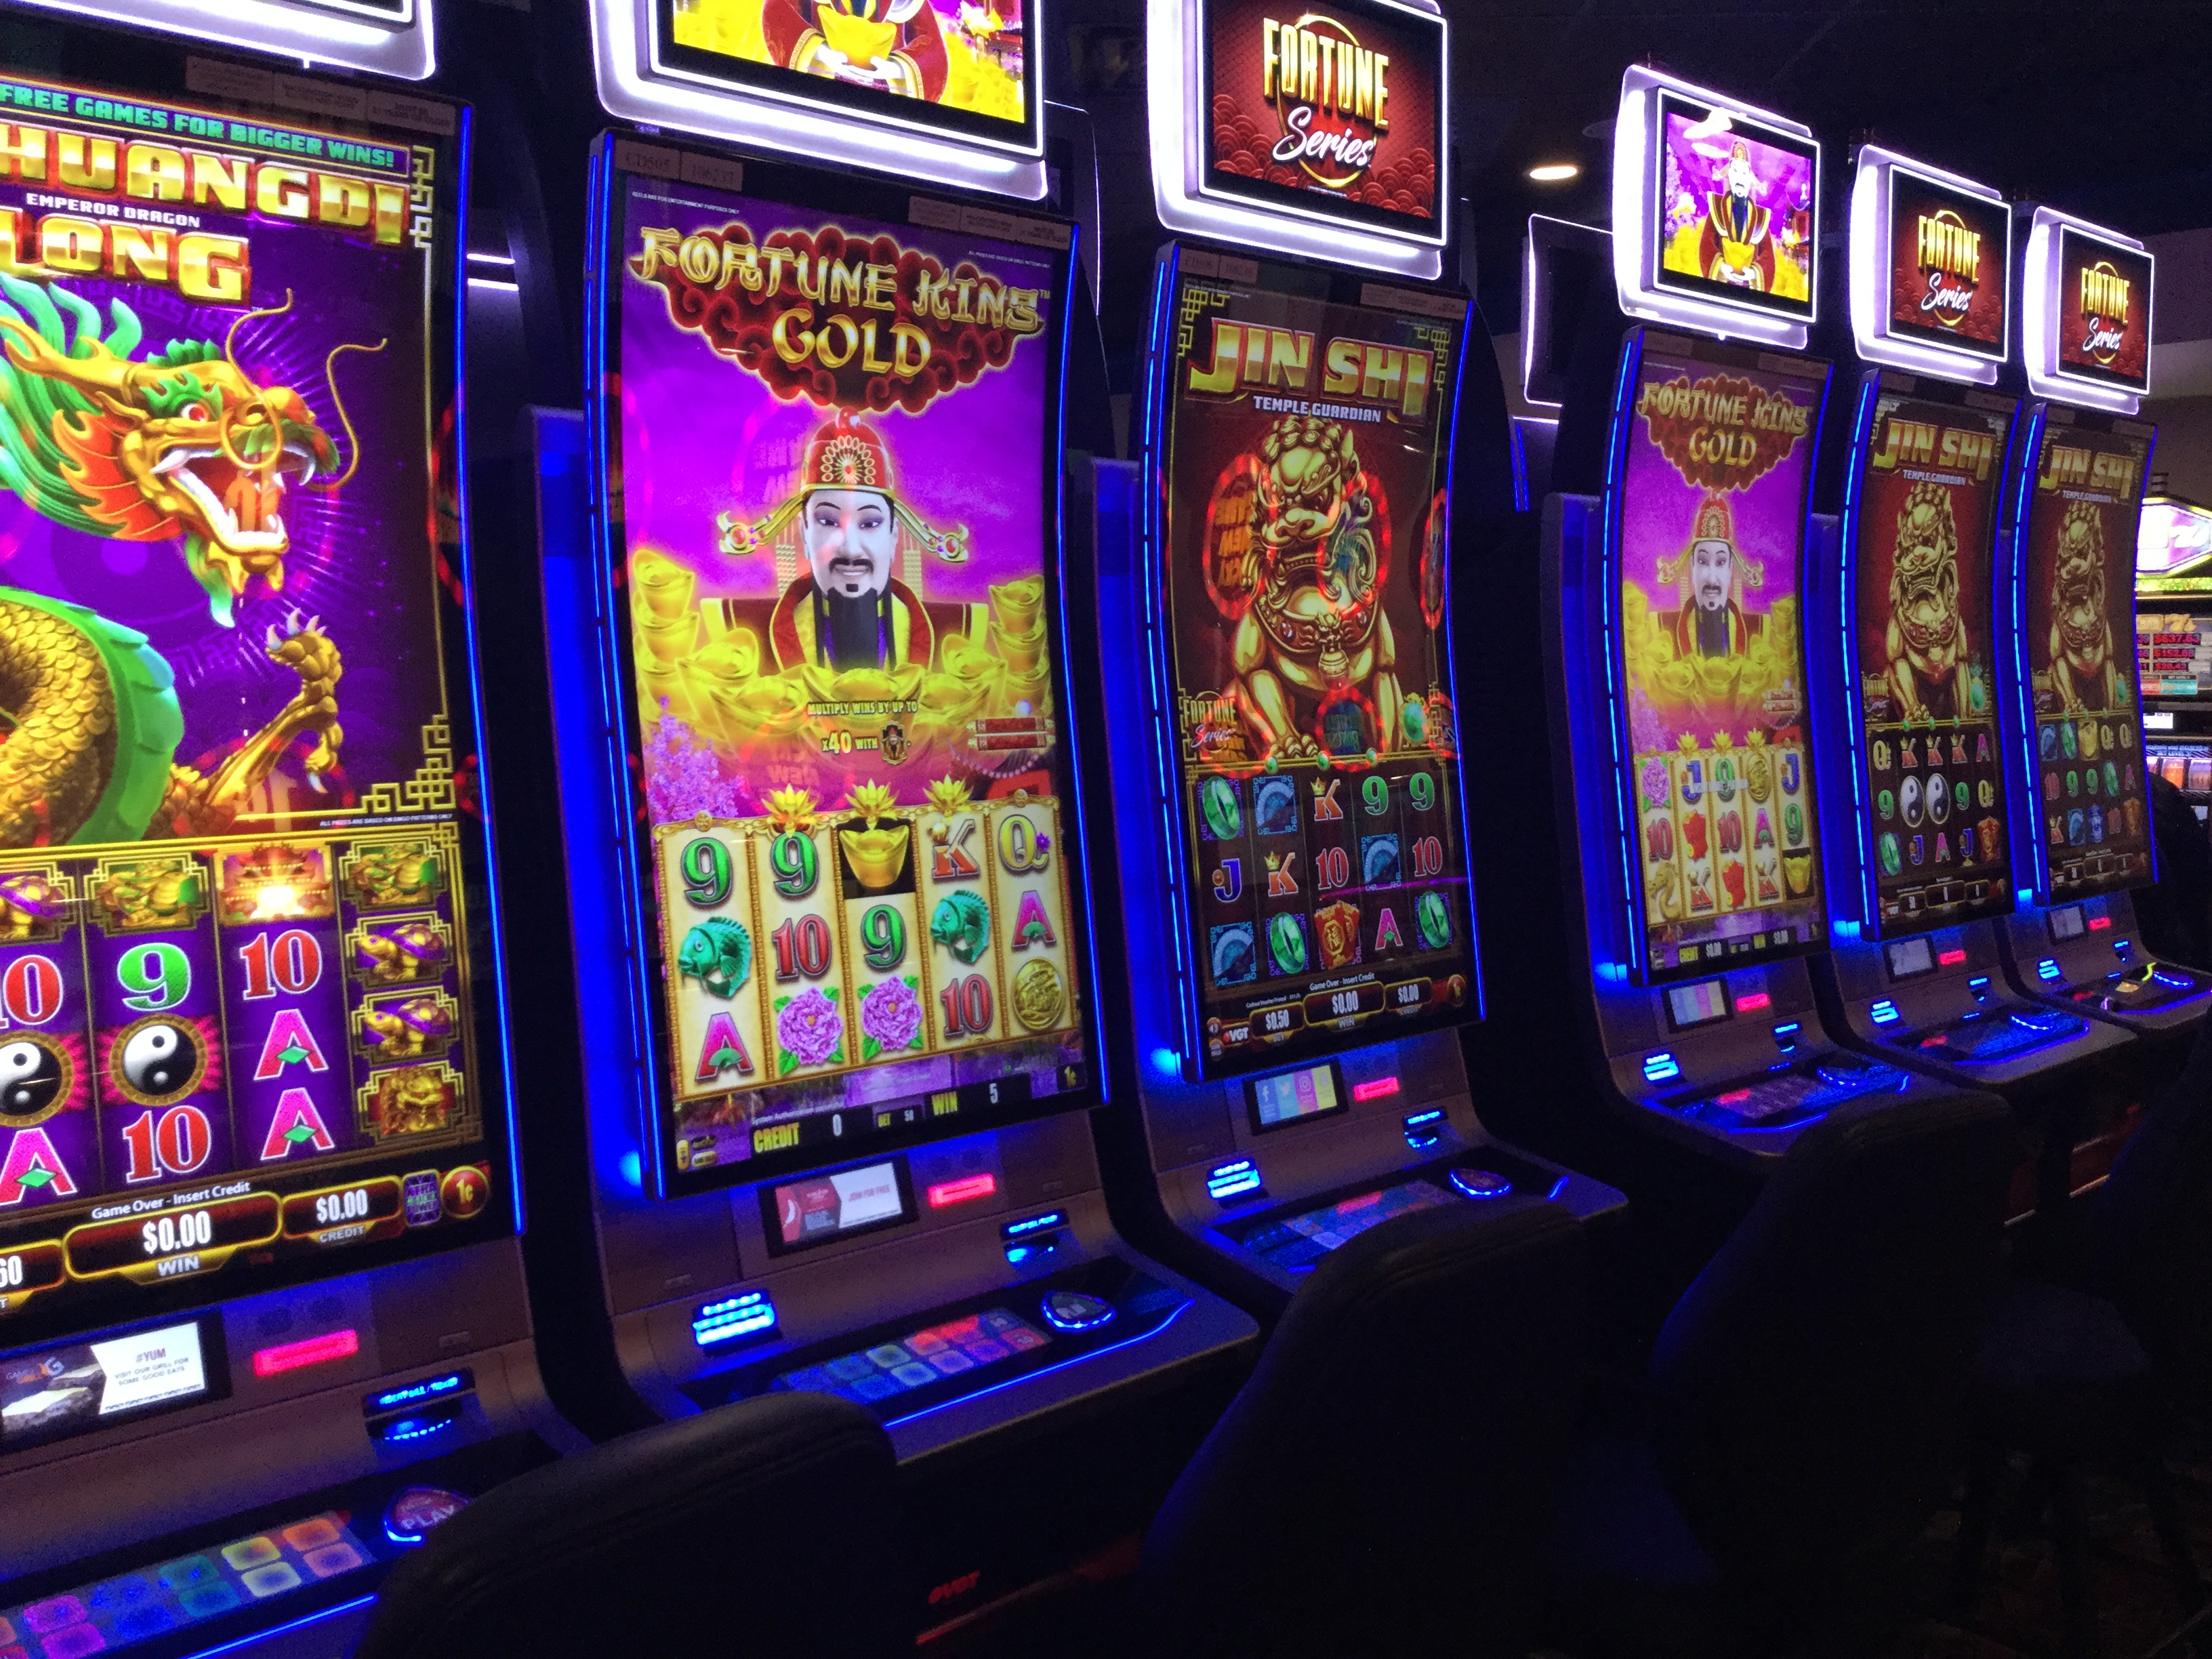 5 Tips for Casino First-Timers